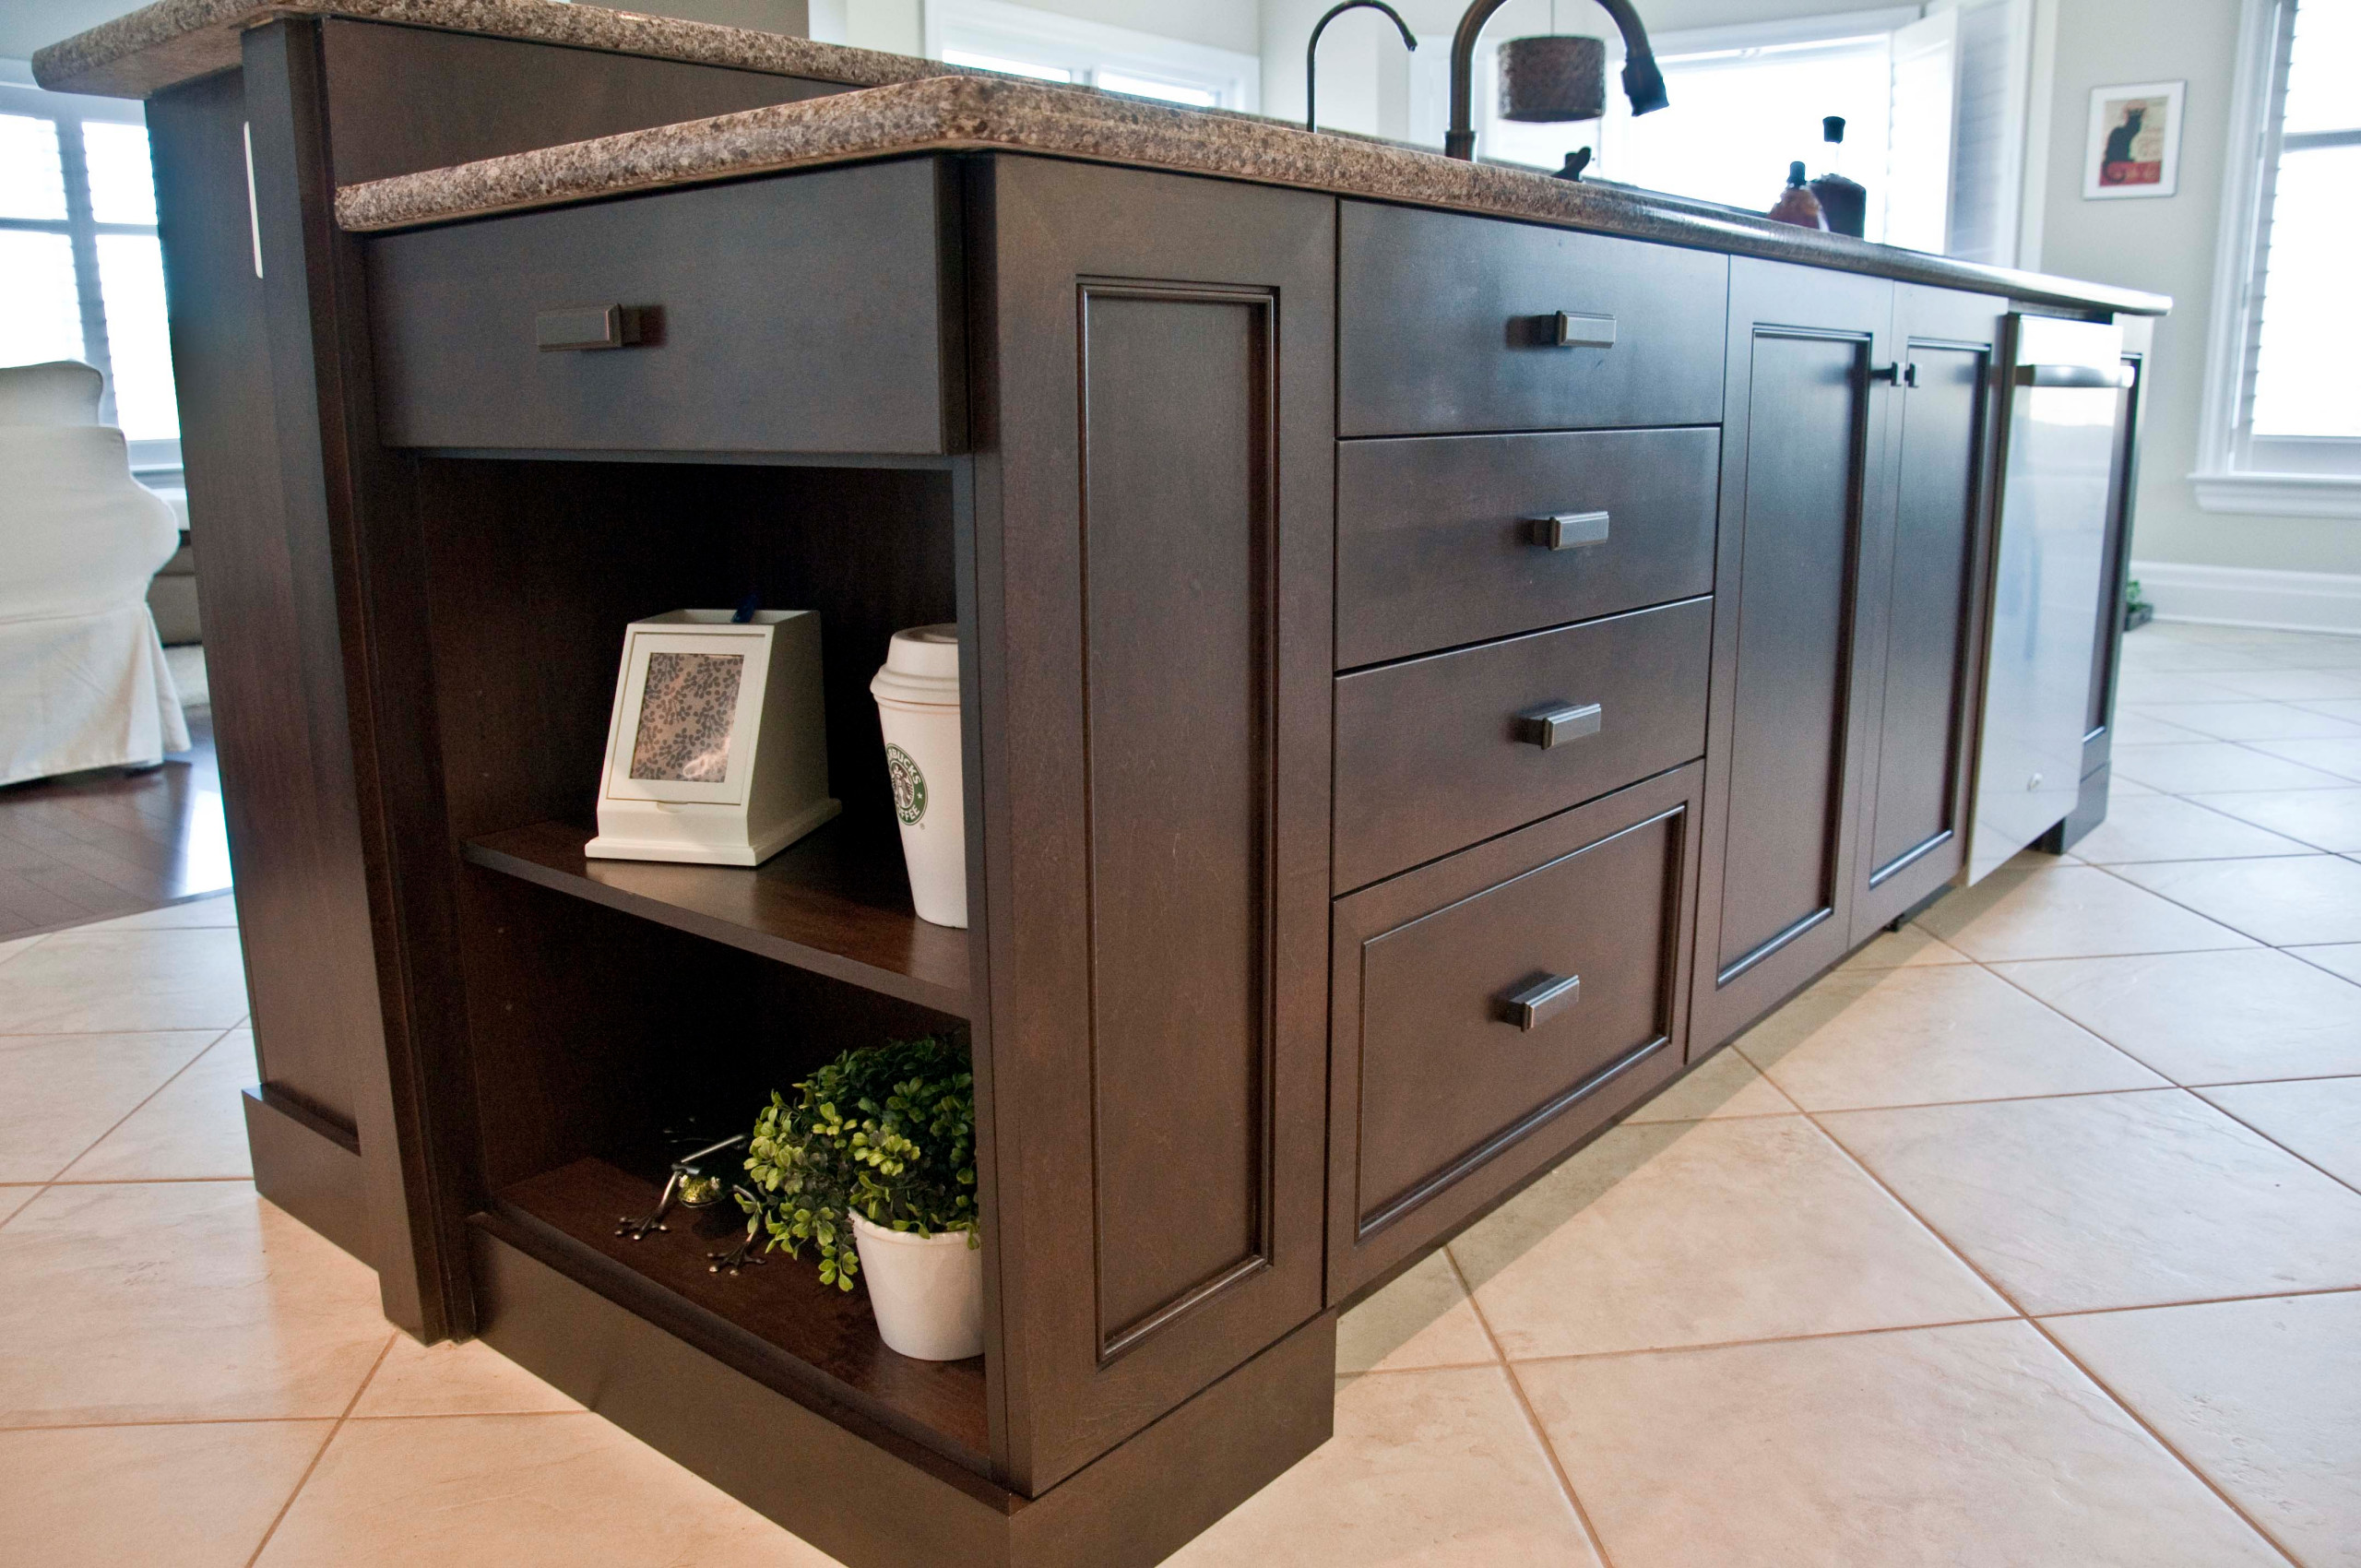 A kitchen island featuring open shelving